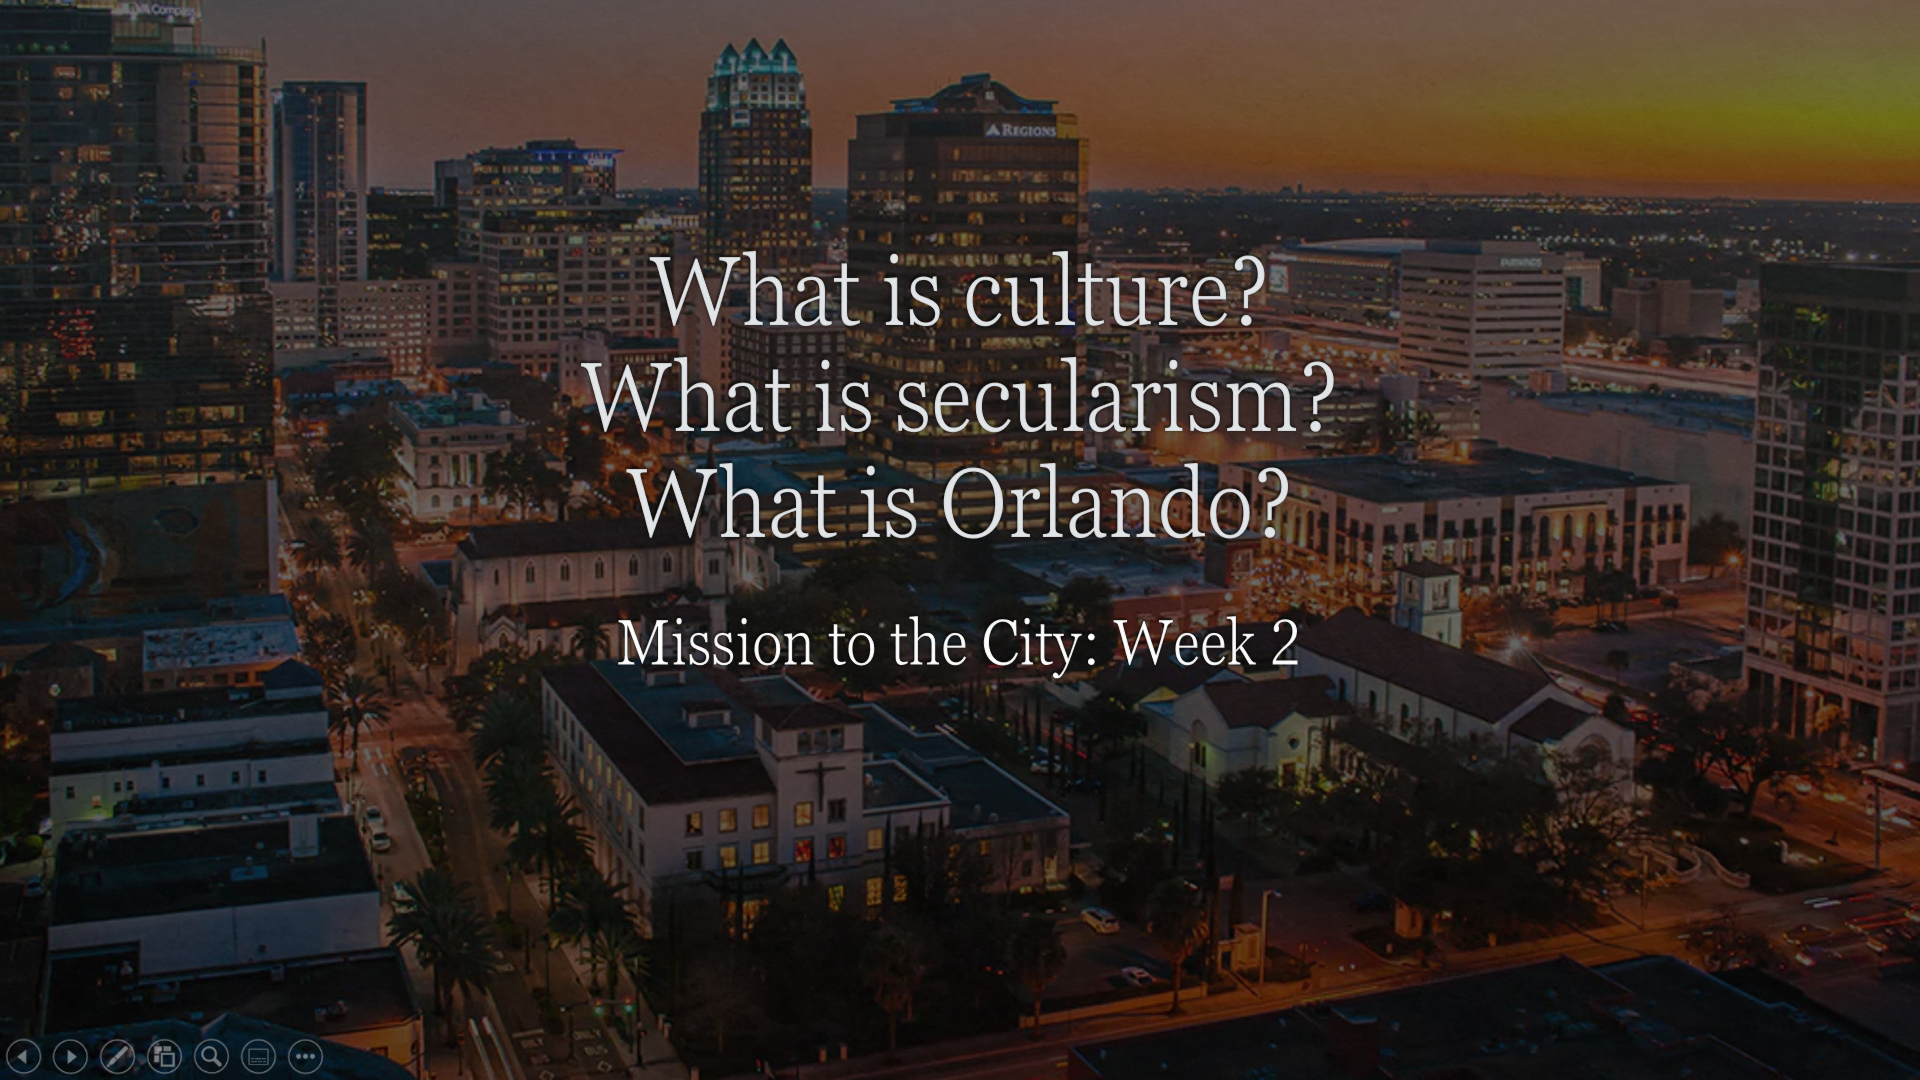 Mission to the City - Week 2